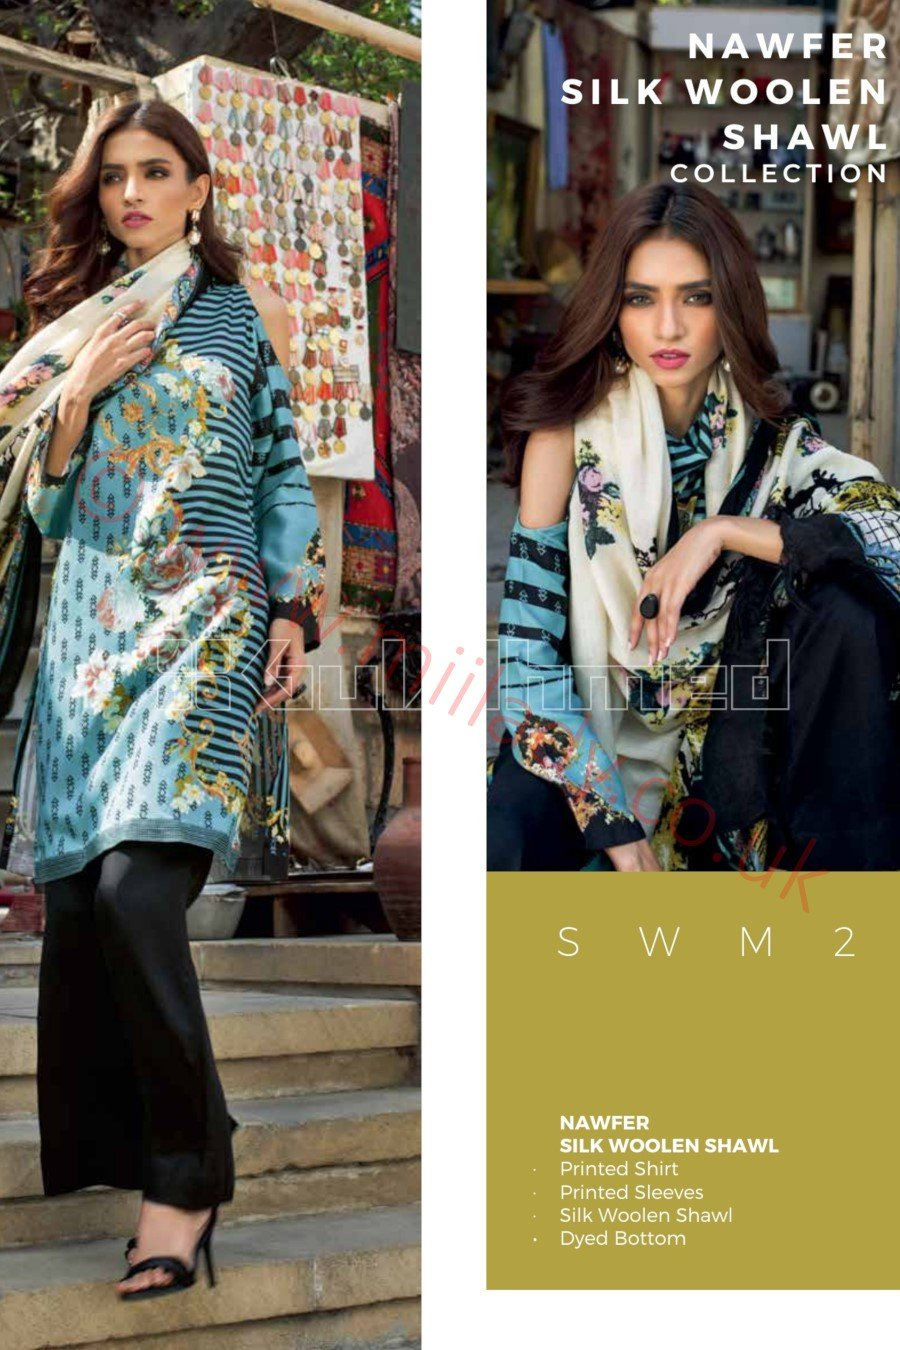 Gul Ahmed Winter 2018 Suit SWM2 - Printed Turquoise Silk Wool Shirt with wool shawl